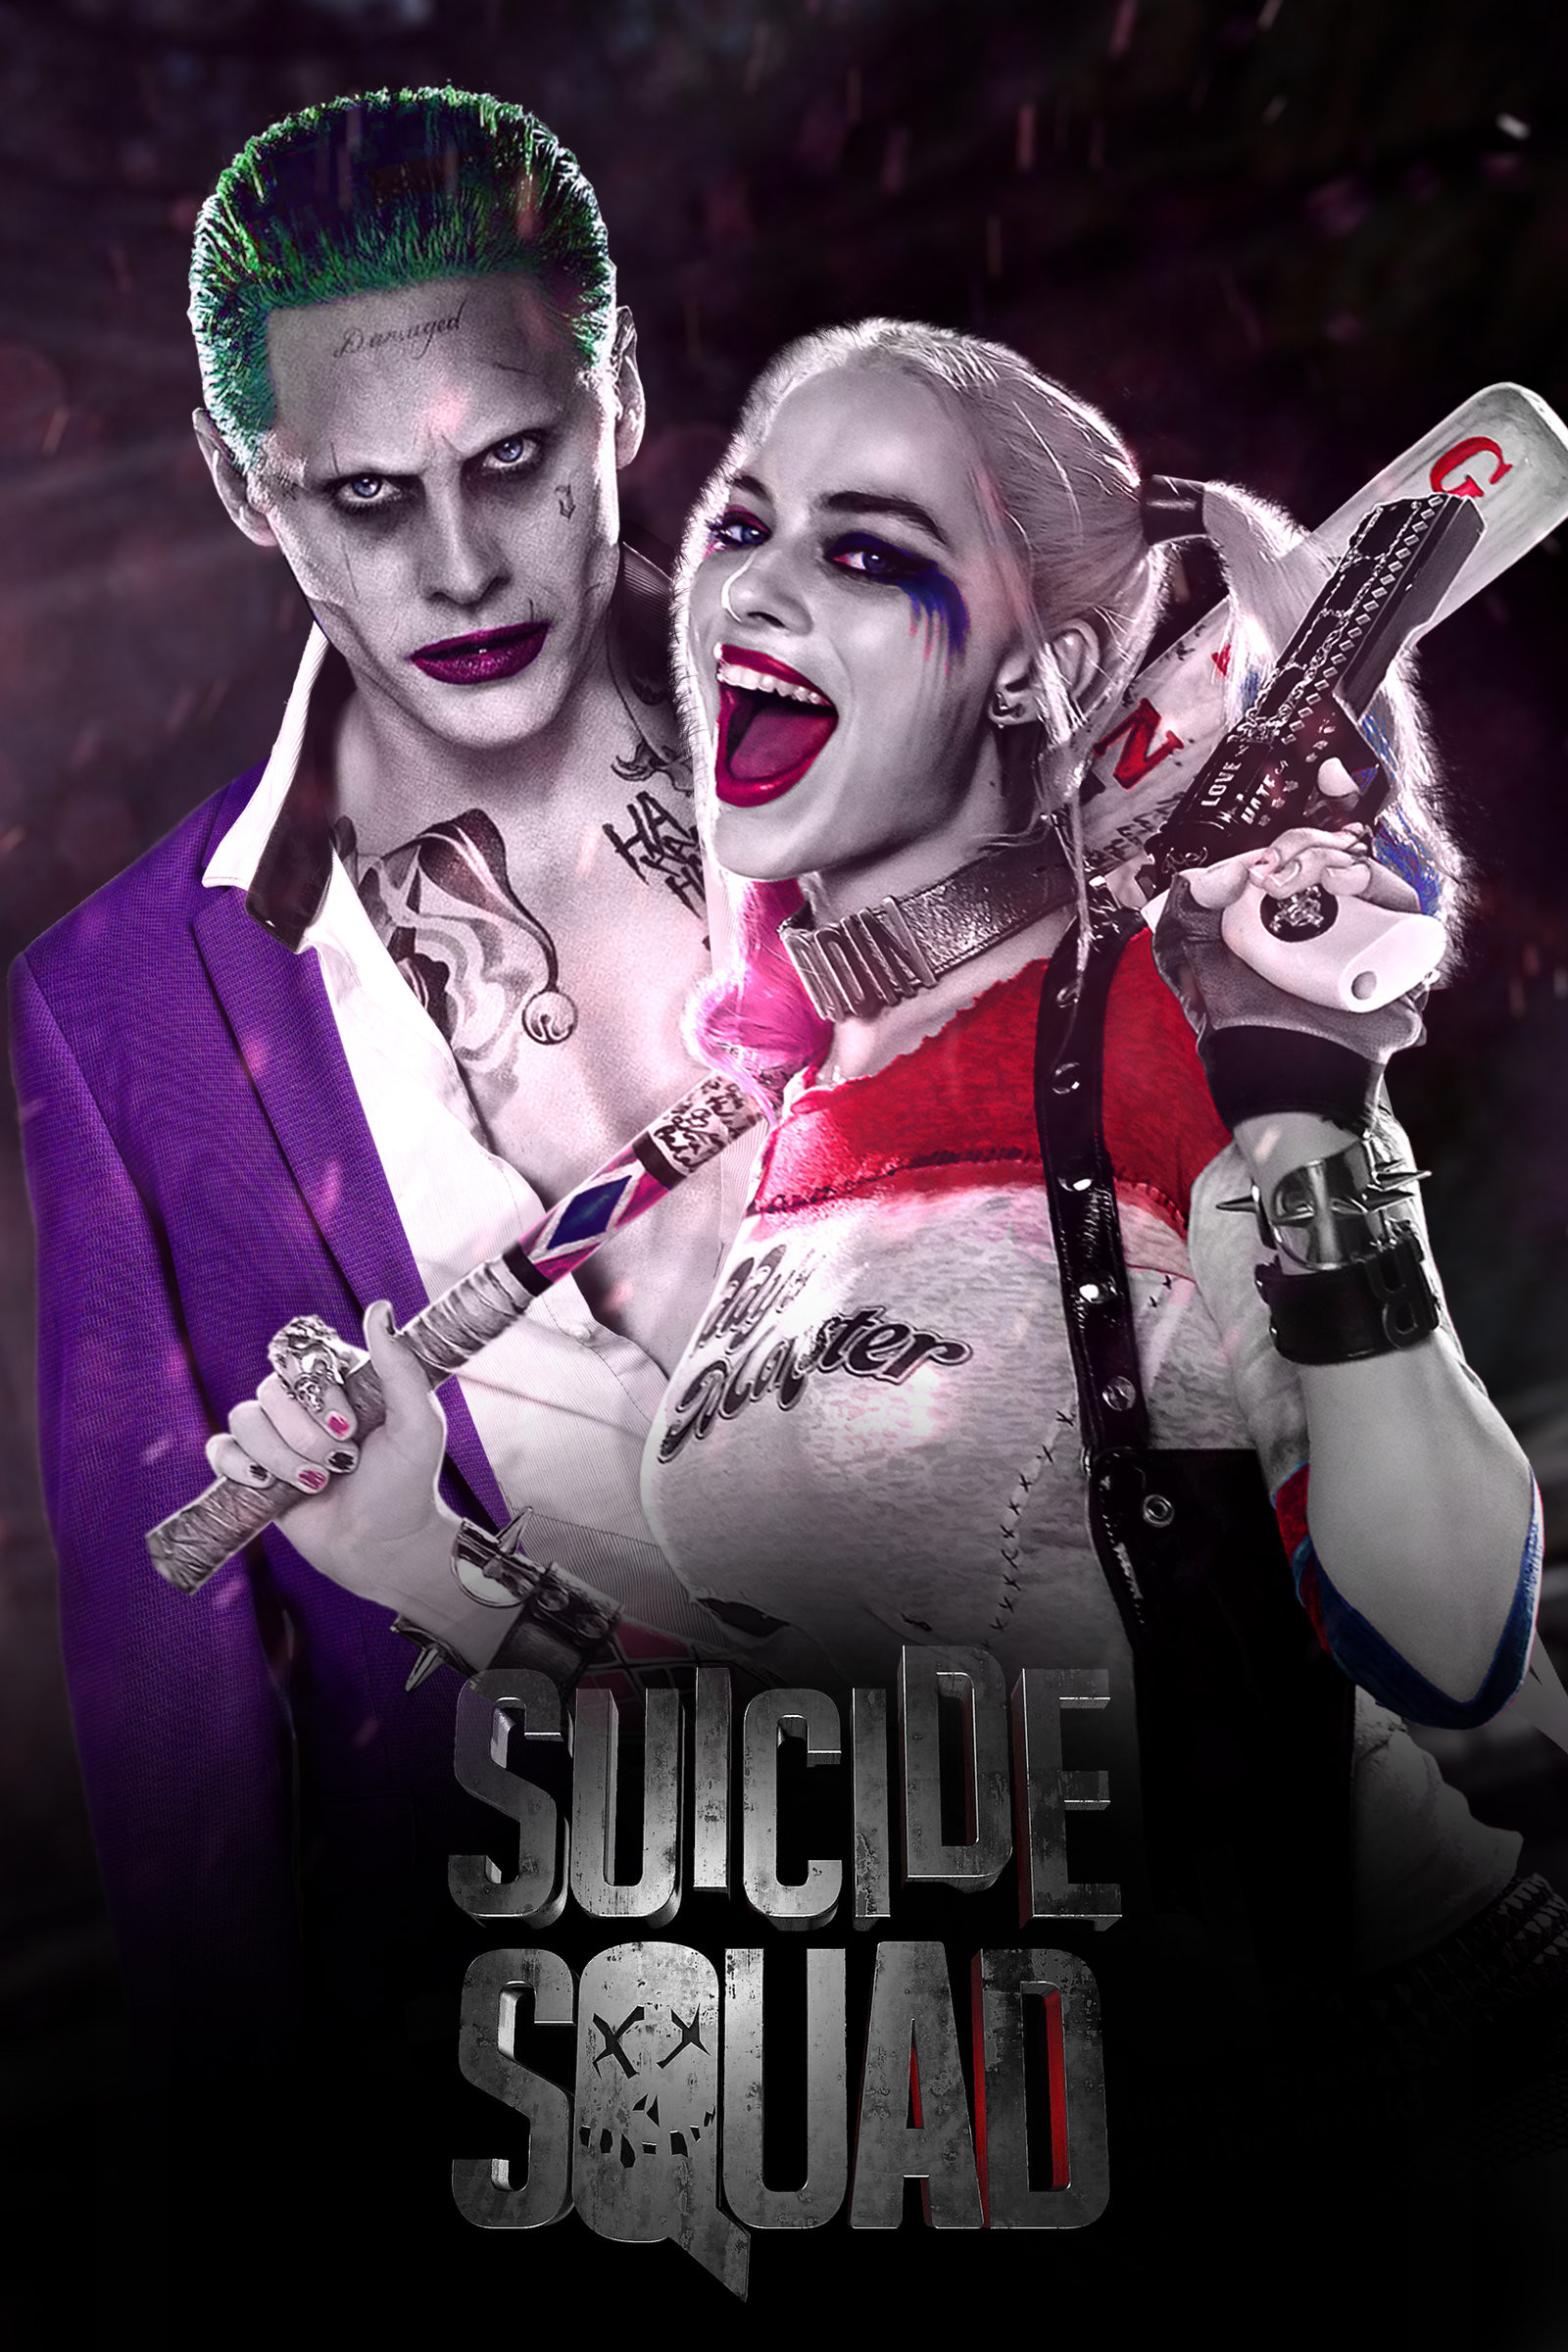 Suicide Squad – Joker and Harley Quinn by jhonaphone on DeviantArt